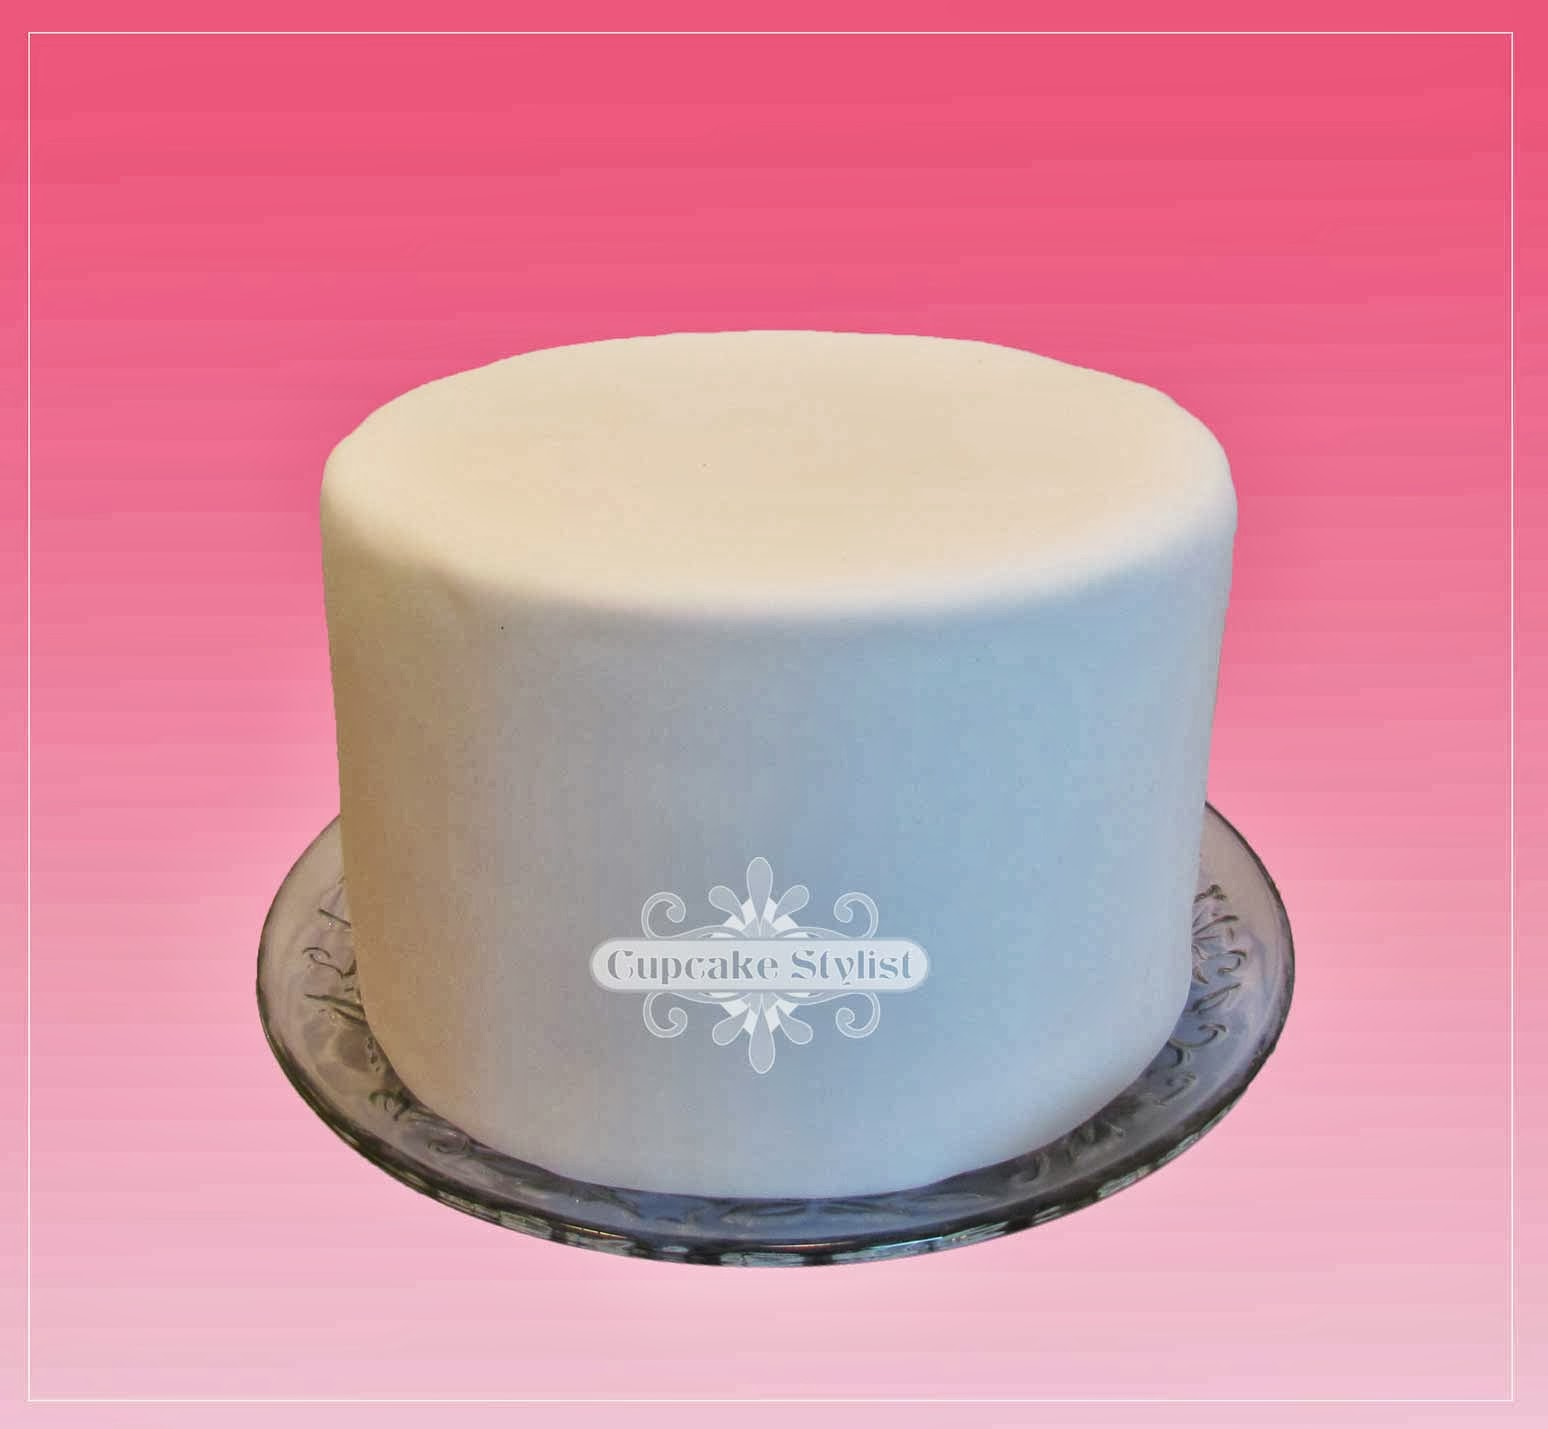 Cake With Fondant Storage : Cupcake Stylist: Cupcake Stylist Q&A Tuesday -- What type ...